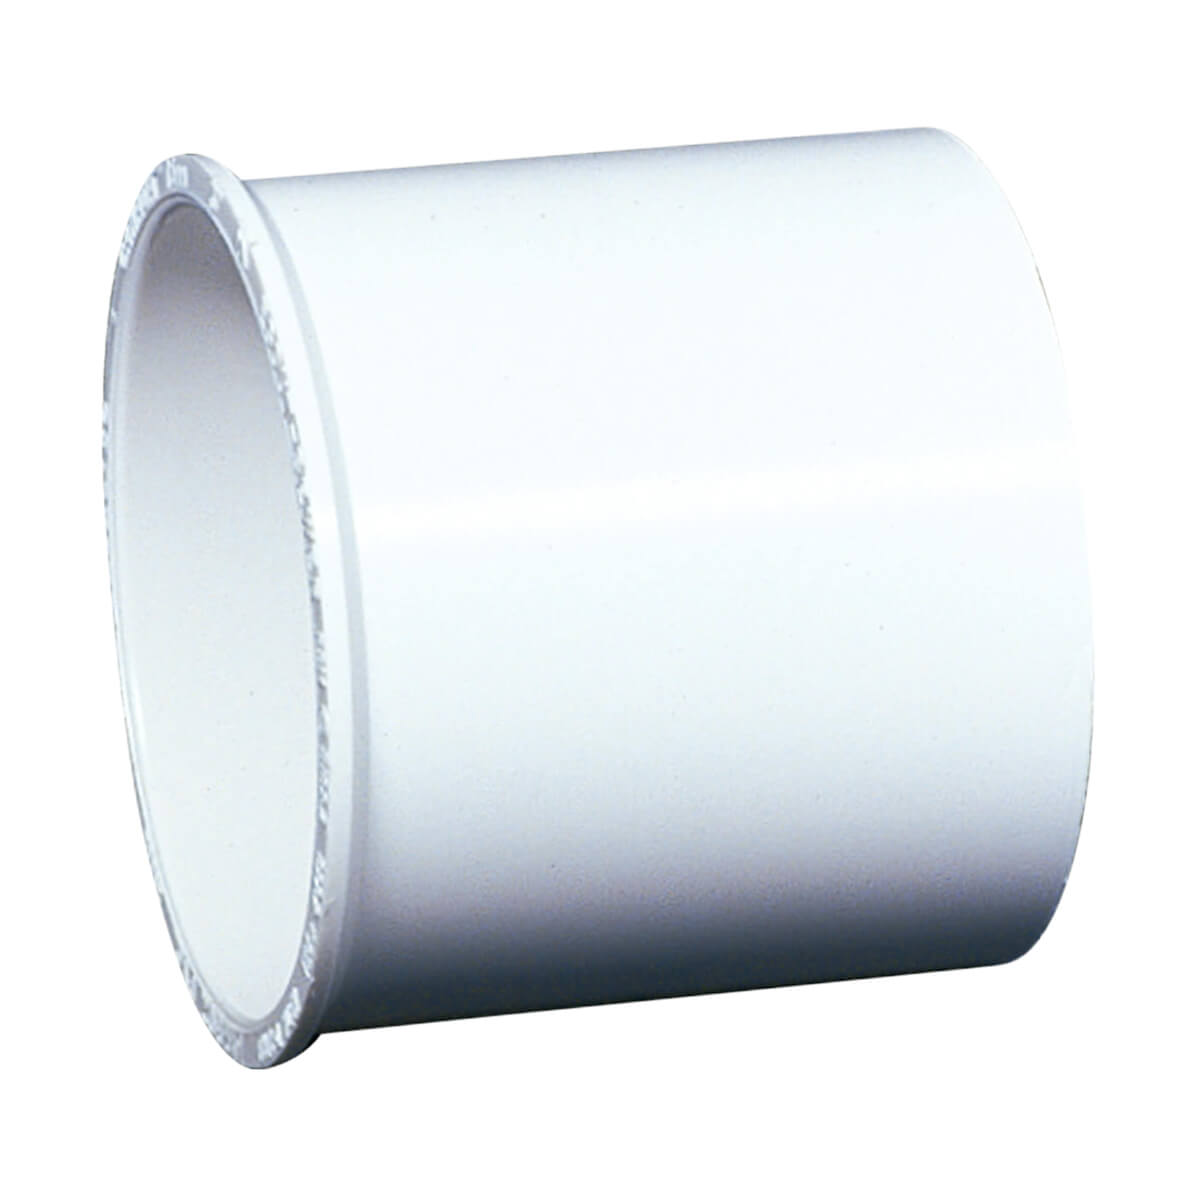 PVC-BDS Coupling with Pipe Stop - Hub - 4-in